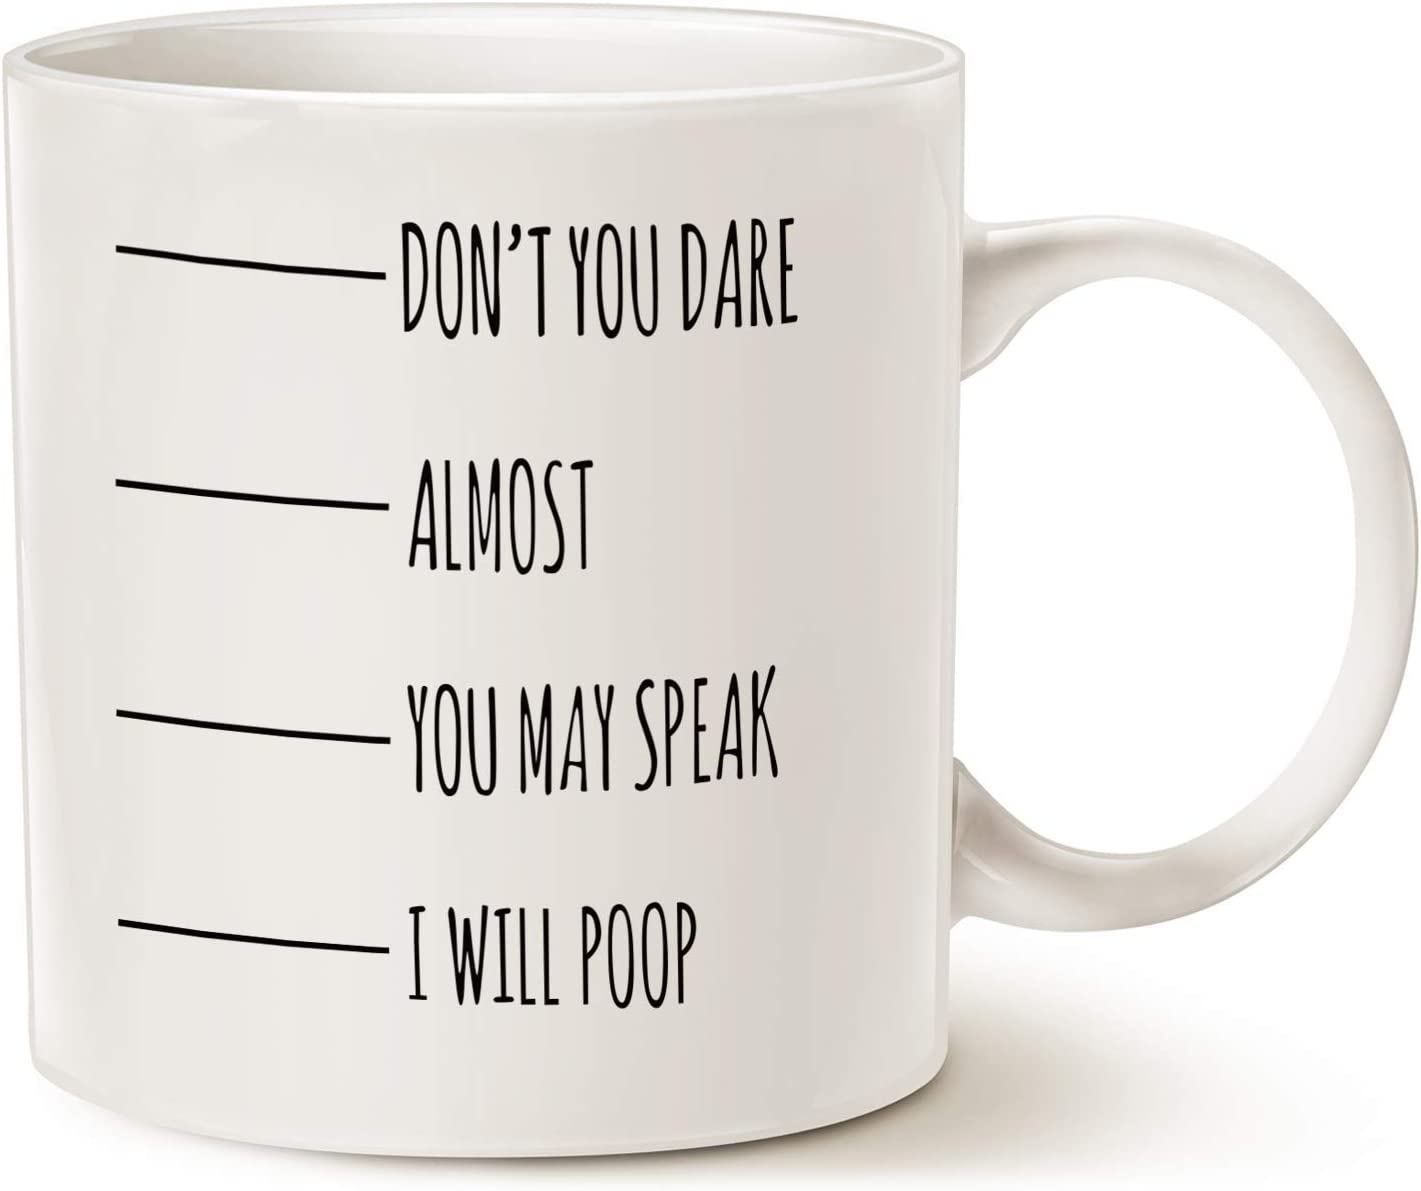 Funny quotes coffee cups mugs Holiday joke gift |